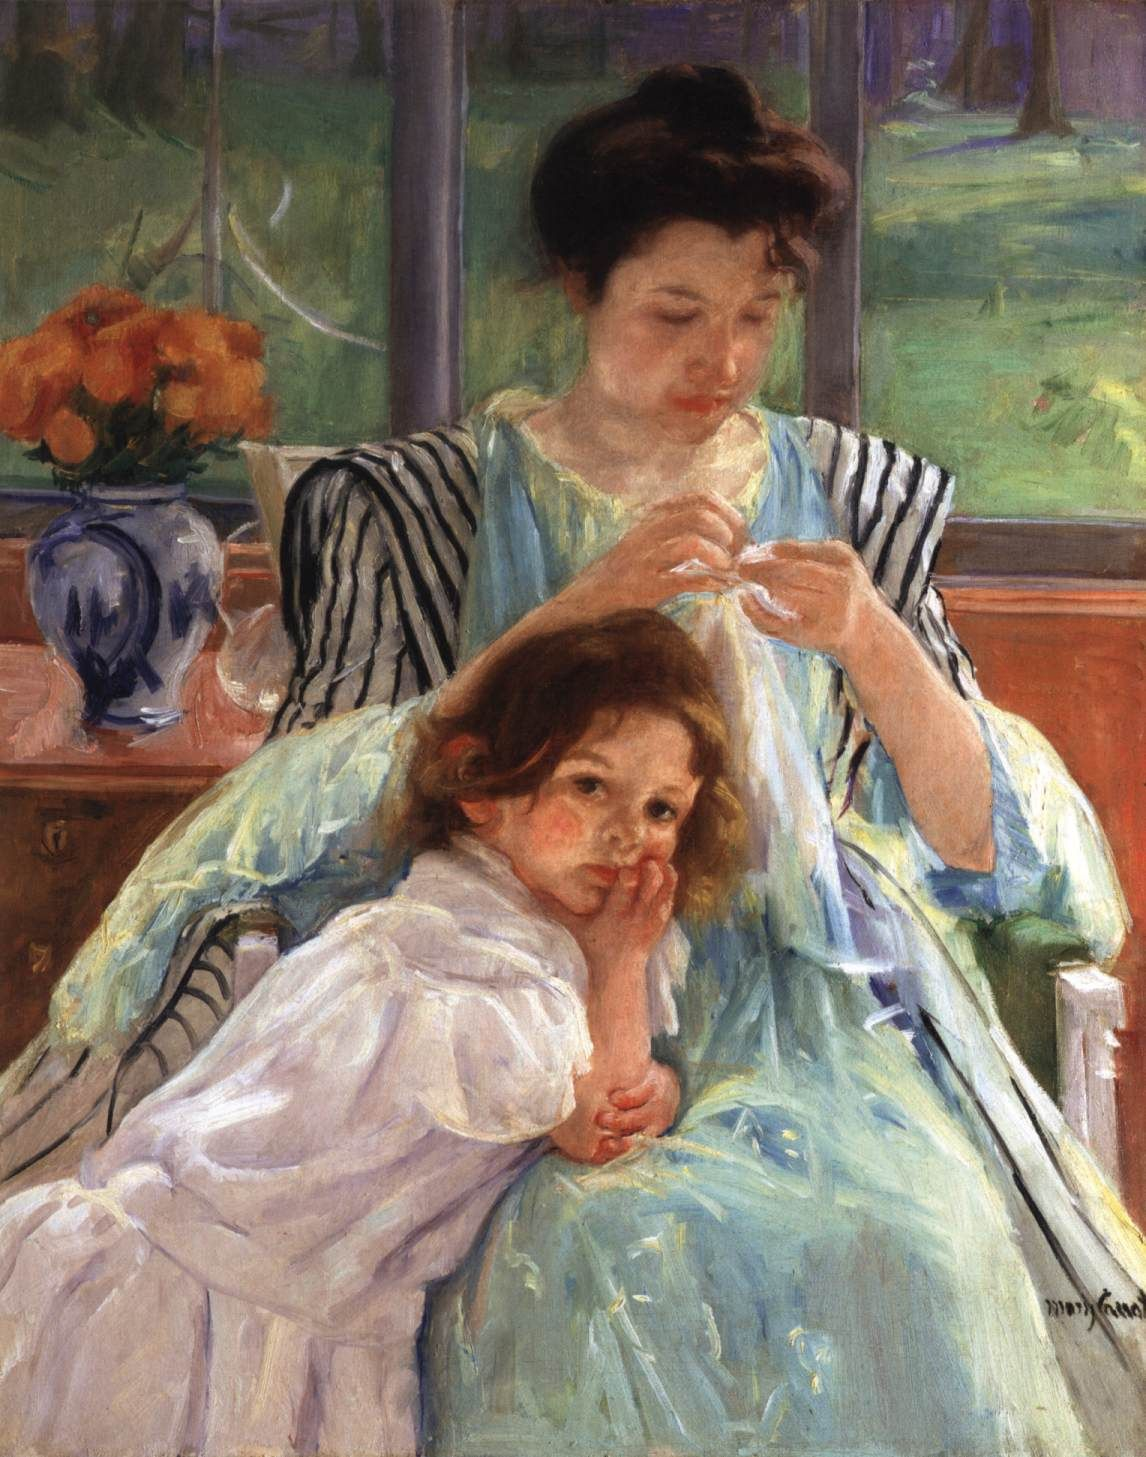 Young Mother Sewing 1900. Oil on canvas, 92 x 74 cm. Metropolitan Museum of Art, New York